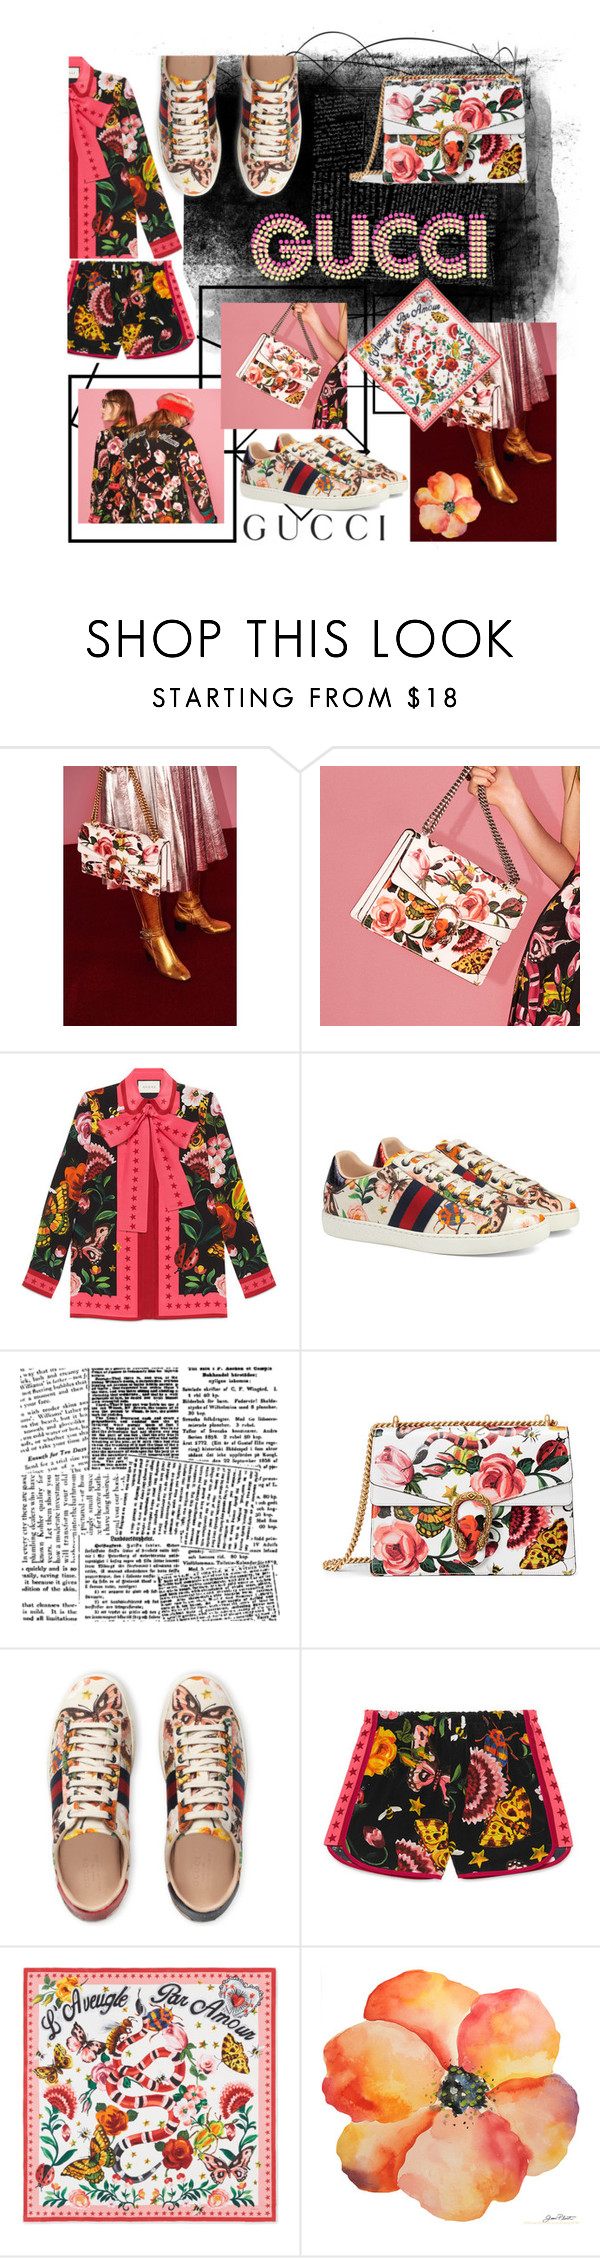 """""""LIKEEE LIKEEE LIKEEE❤"""" by shafsnizzler ❤ liked on Polyvore featuring Gucci"""